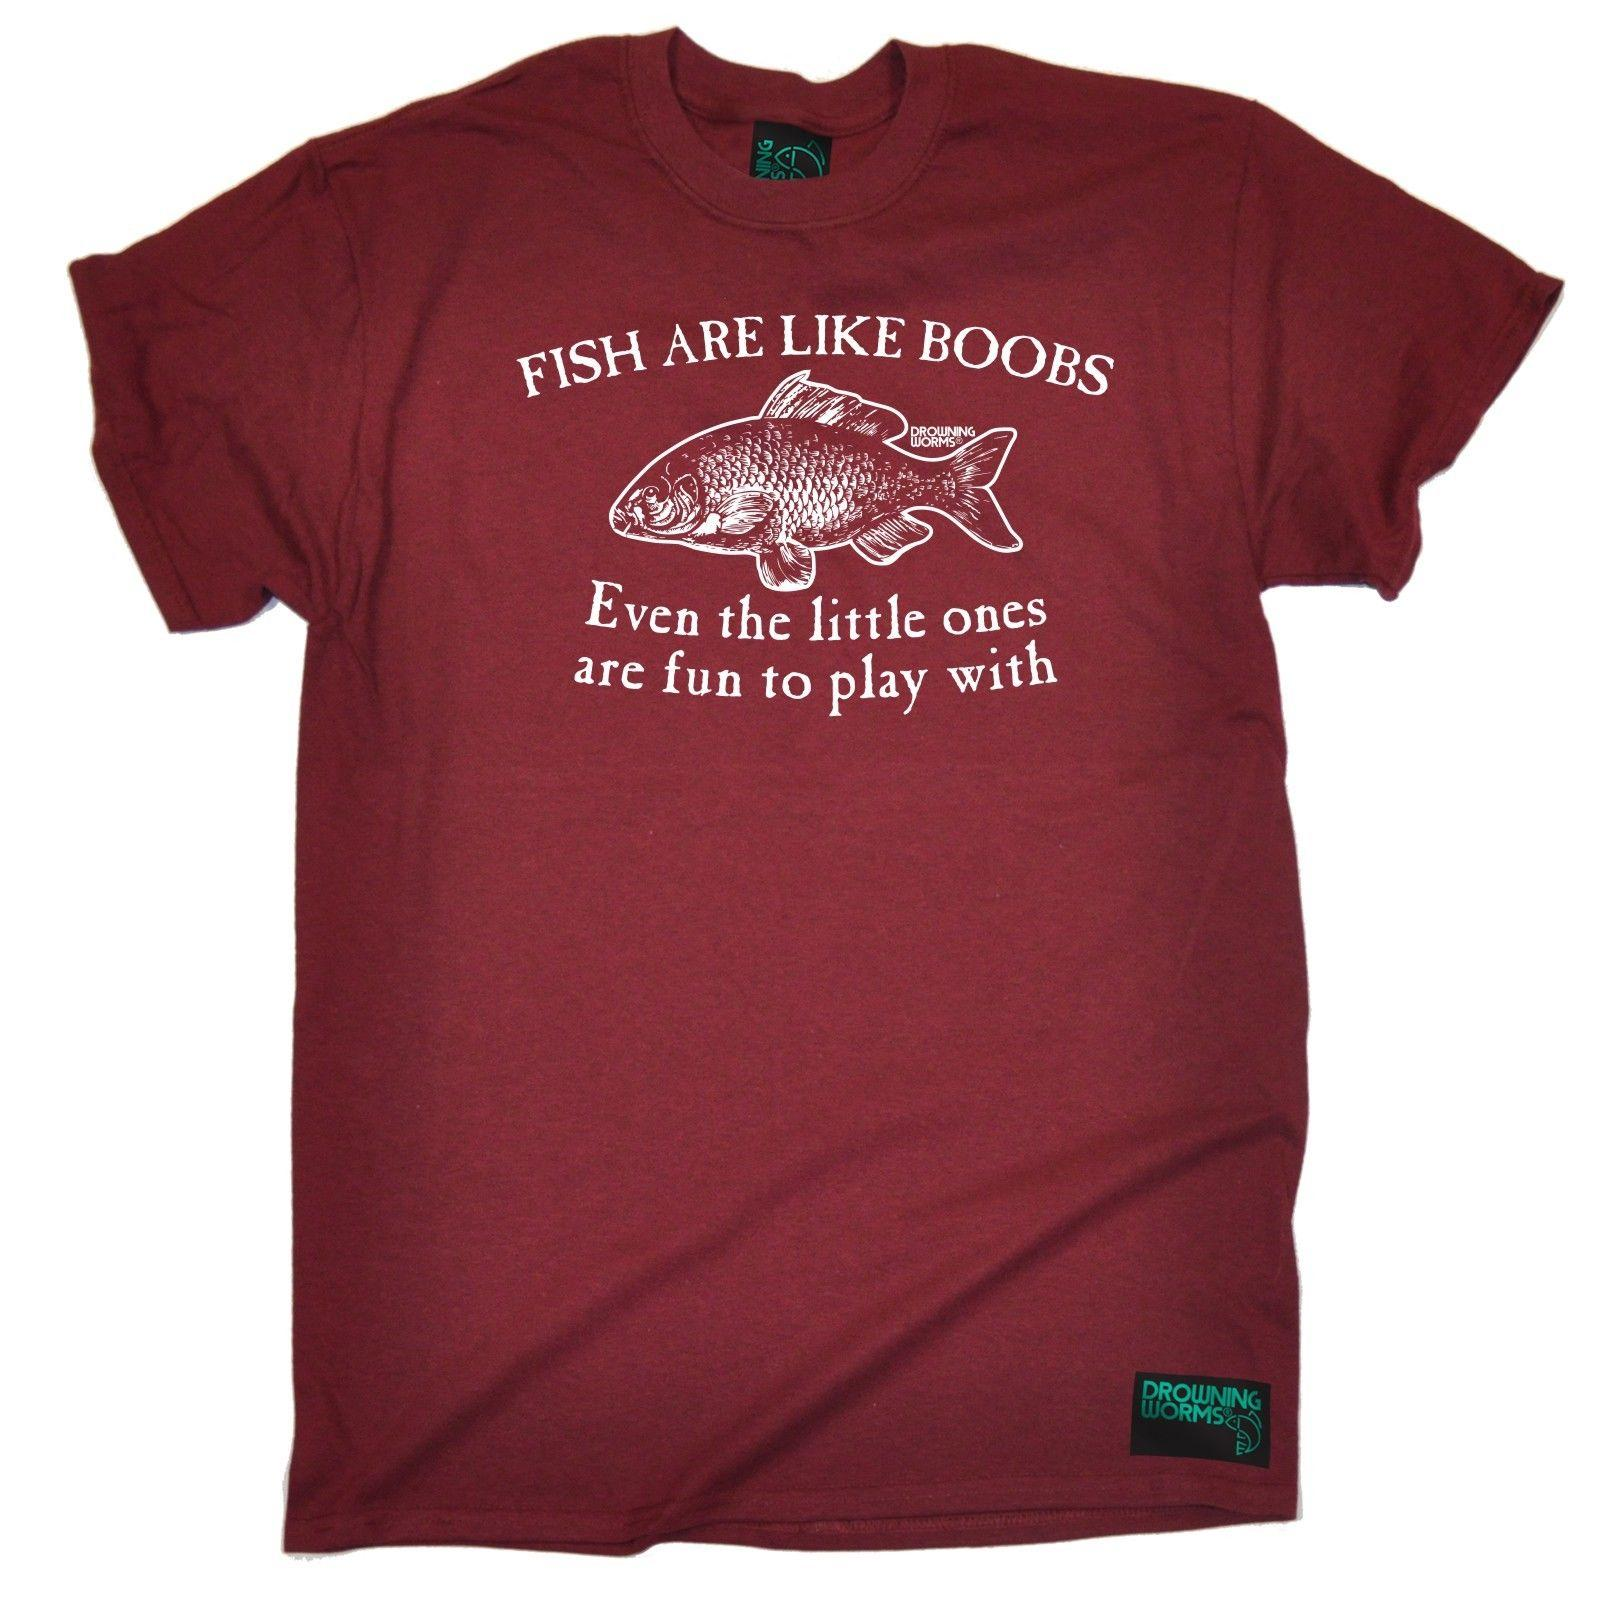 Fishing Tee Fish Are Like Boobs Rude Adult Rod Funny Birthday T SHIRT Casual Shirts Designer White Shirt From Fatcuckoo